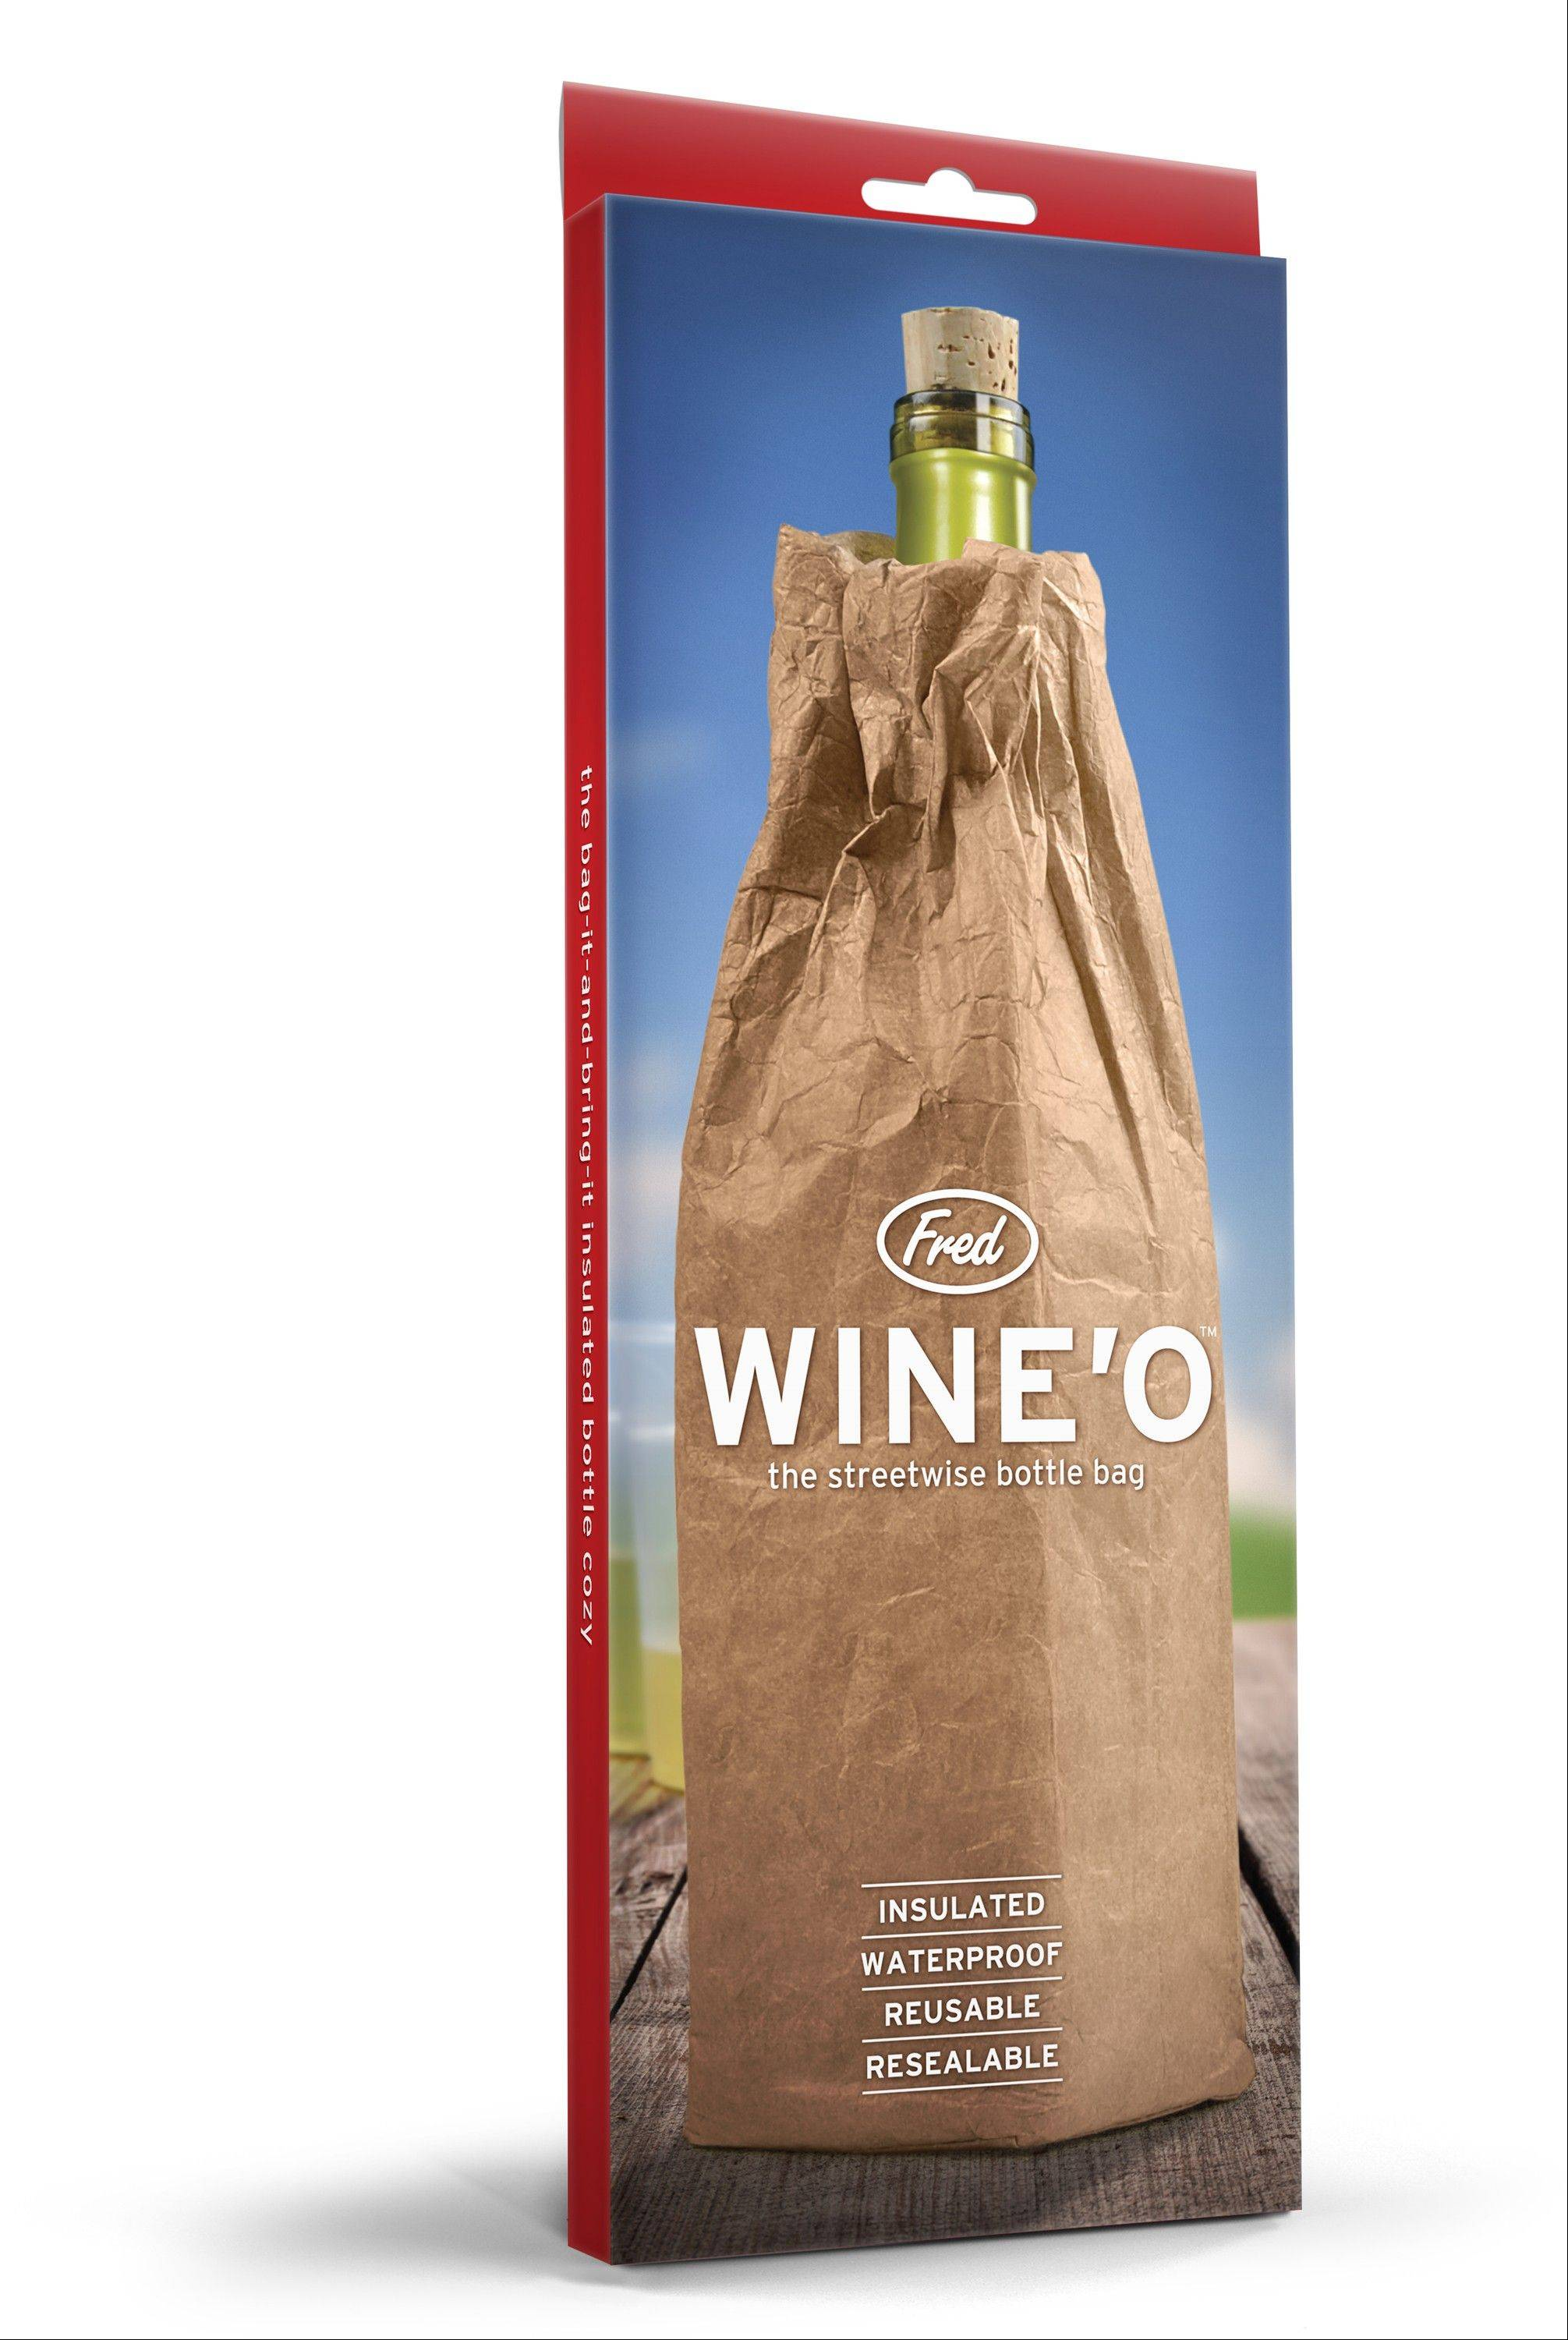 The Wine-O bag, an insulated bag bottle bag, is a perfect gift for the Jewish hipster.